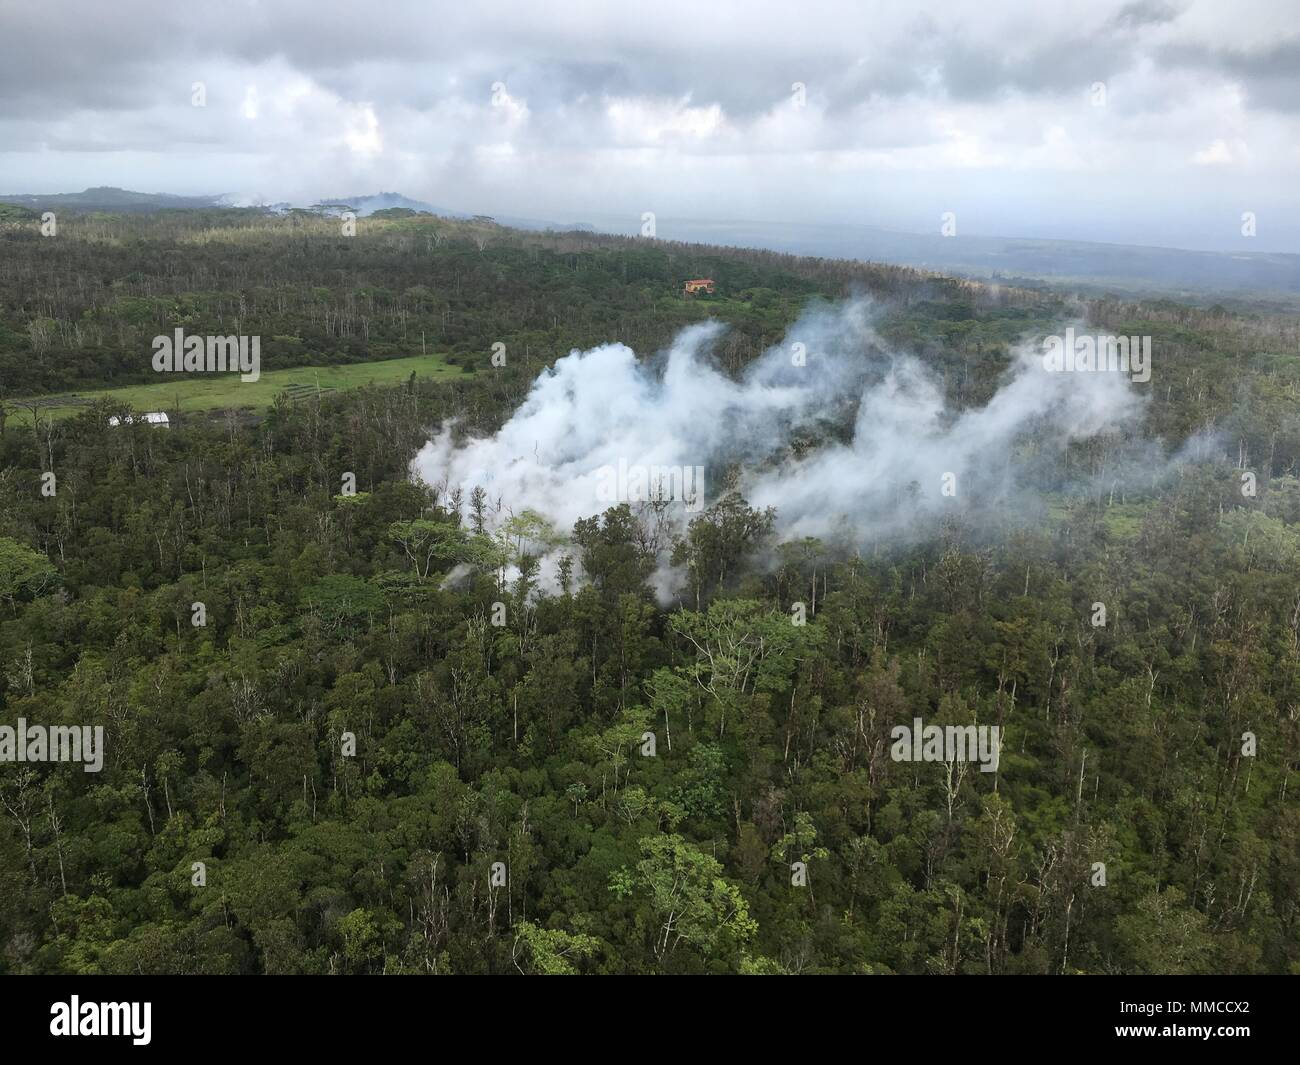 Leilani Estates, Hawaii. May 9, 2018. Aerial view of lava and steam spewing from fissures caused by the Kilauea volcano eruption May 9, 2018 in Leilani Estates, Hawaii. The recent eruption continues destroying homes, forcing evacuations and spewing lava and poison gas on the Big Island of Hawaii. Credit: Planetpix/Alamy Live News Stock Photo